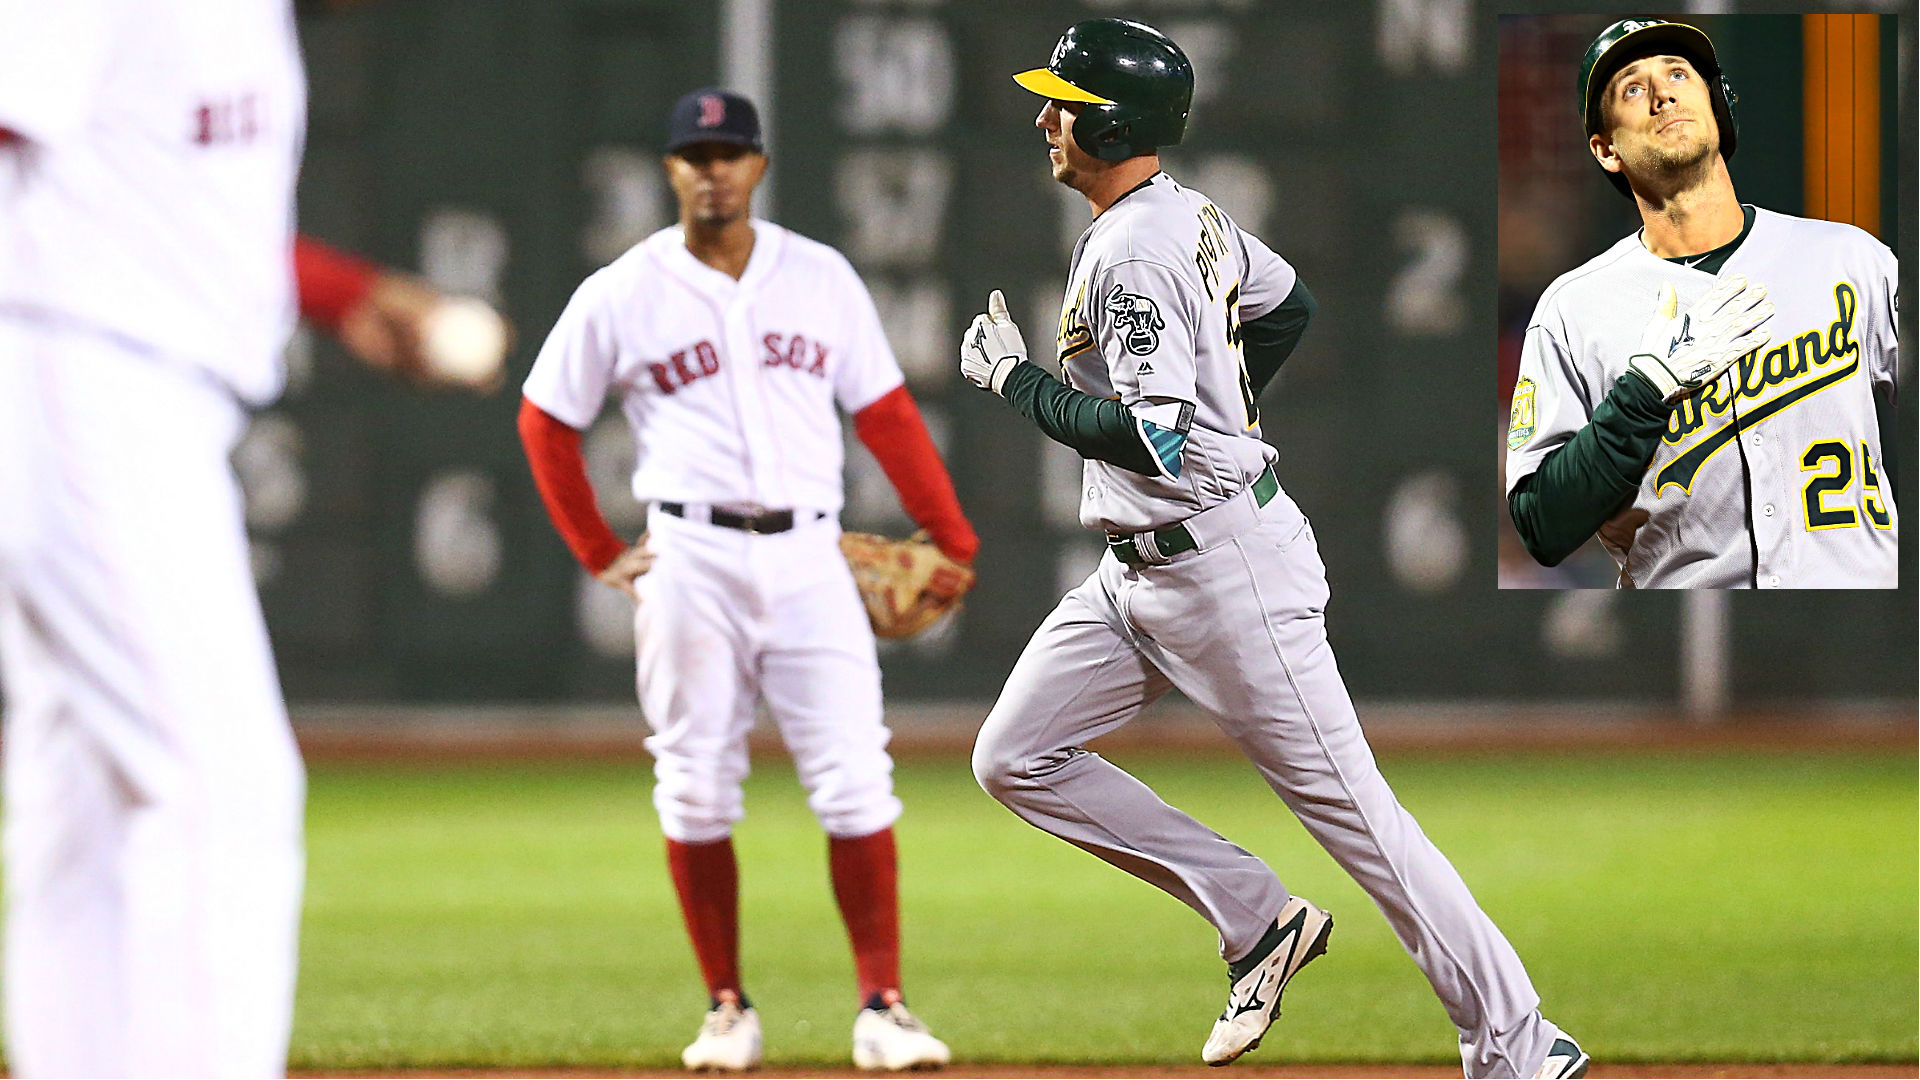 Emotional victory: Stephen Piscotty homers in A's win at Boston